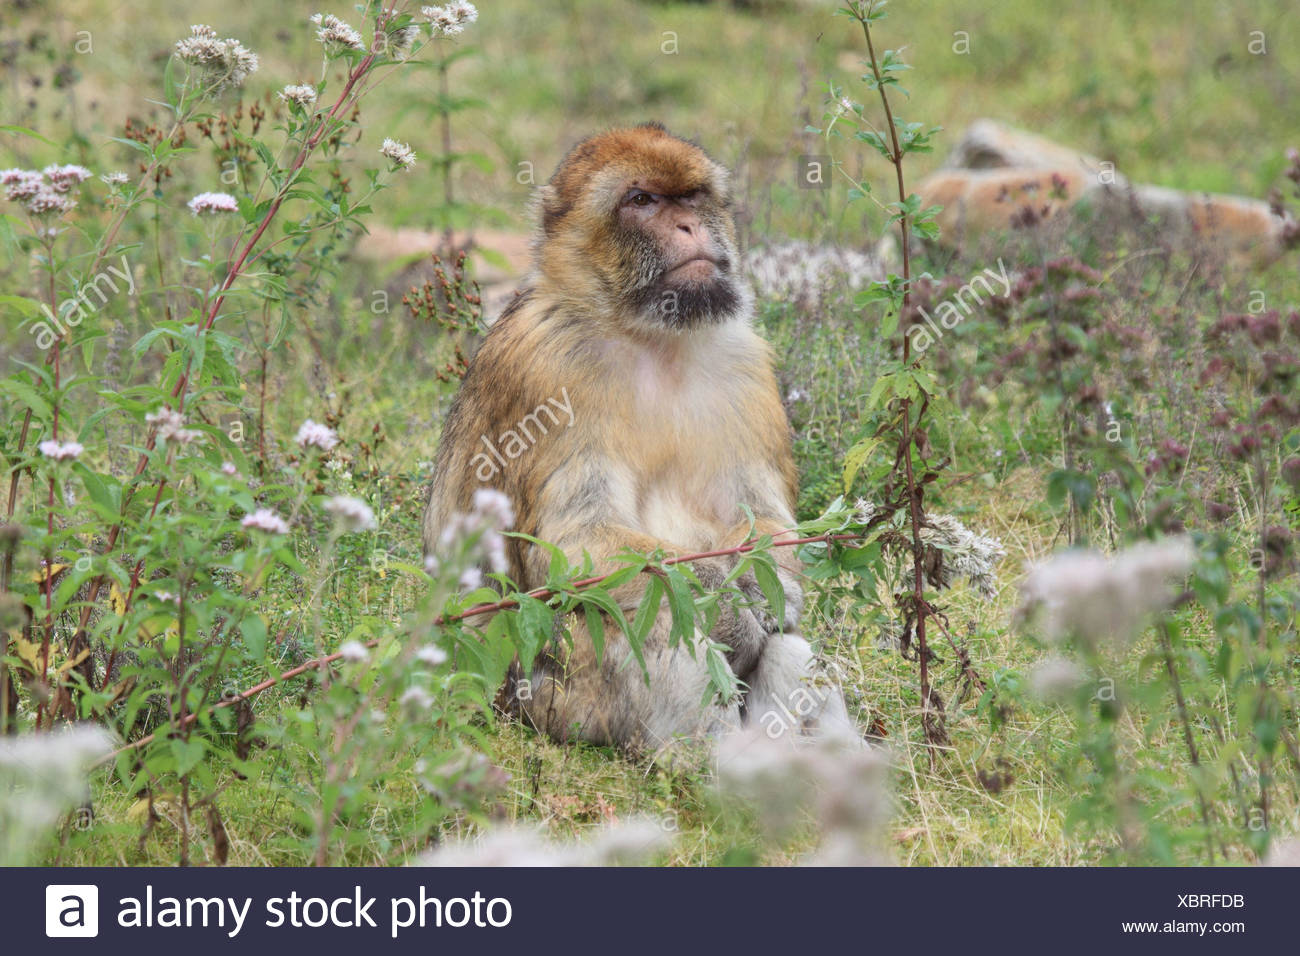 Berber's monkey with young animal, - Stock Image